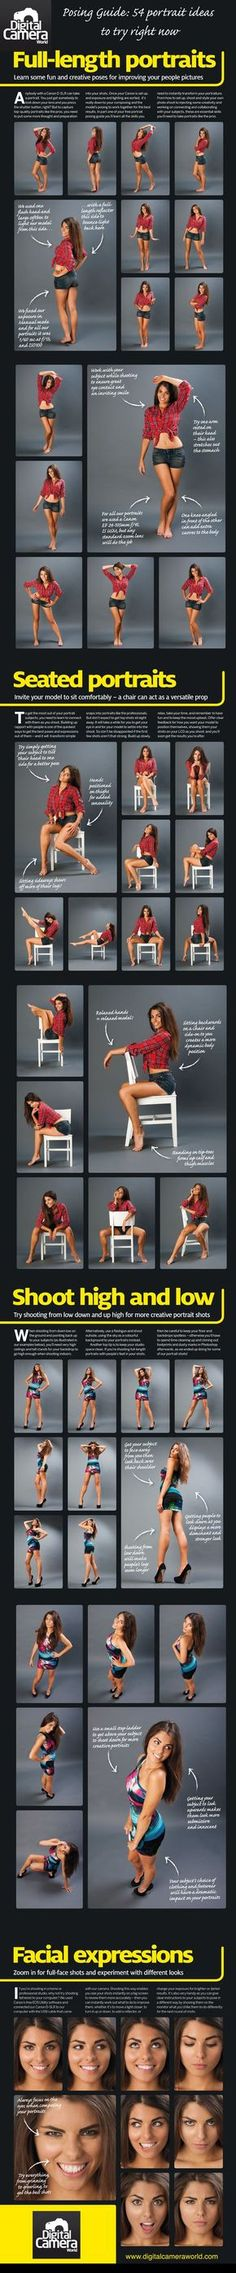 Most people don't know how to pose when it comes to portrait pictures and you see many amateur and unprofessional models because they don't look confident in their pictures. This infographic DigitalCameraWorld goes through 50 different poses which will li Poses Photo, Photo Tips, Photo Shoots, Photo Ideas, Picture Ideas, Picture Outfits, Photo Blog, Photography Tutorials, Portrait Photography